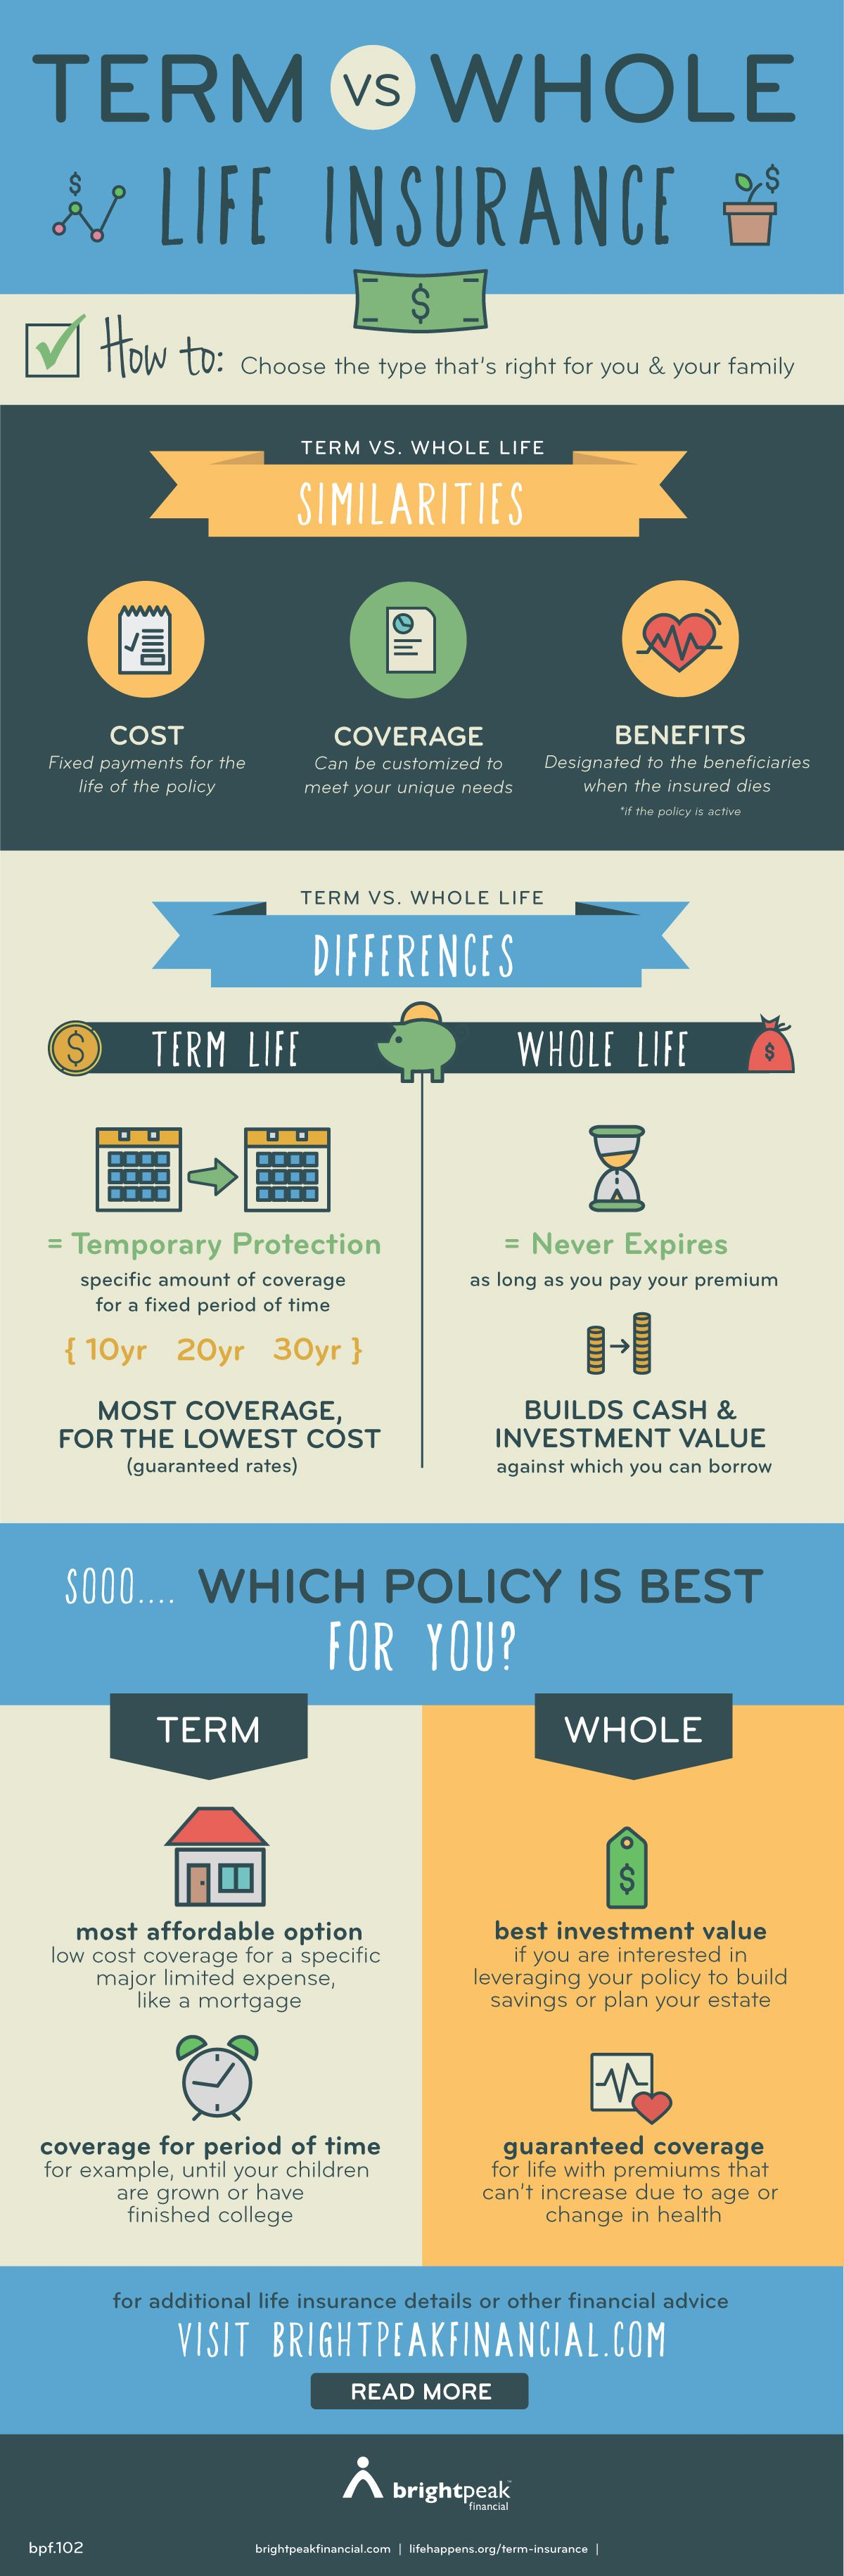 What's the difference between term & whole life insurance? Learn the similarities and differences & how to choose the type that's right for you and your family! - brightpeak financial